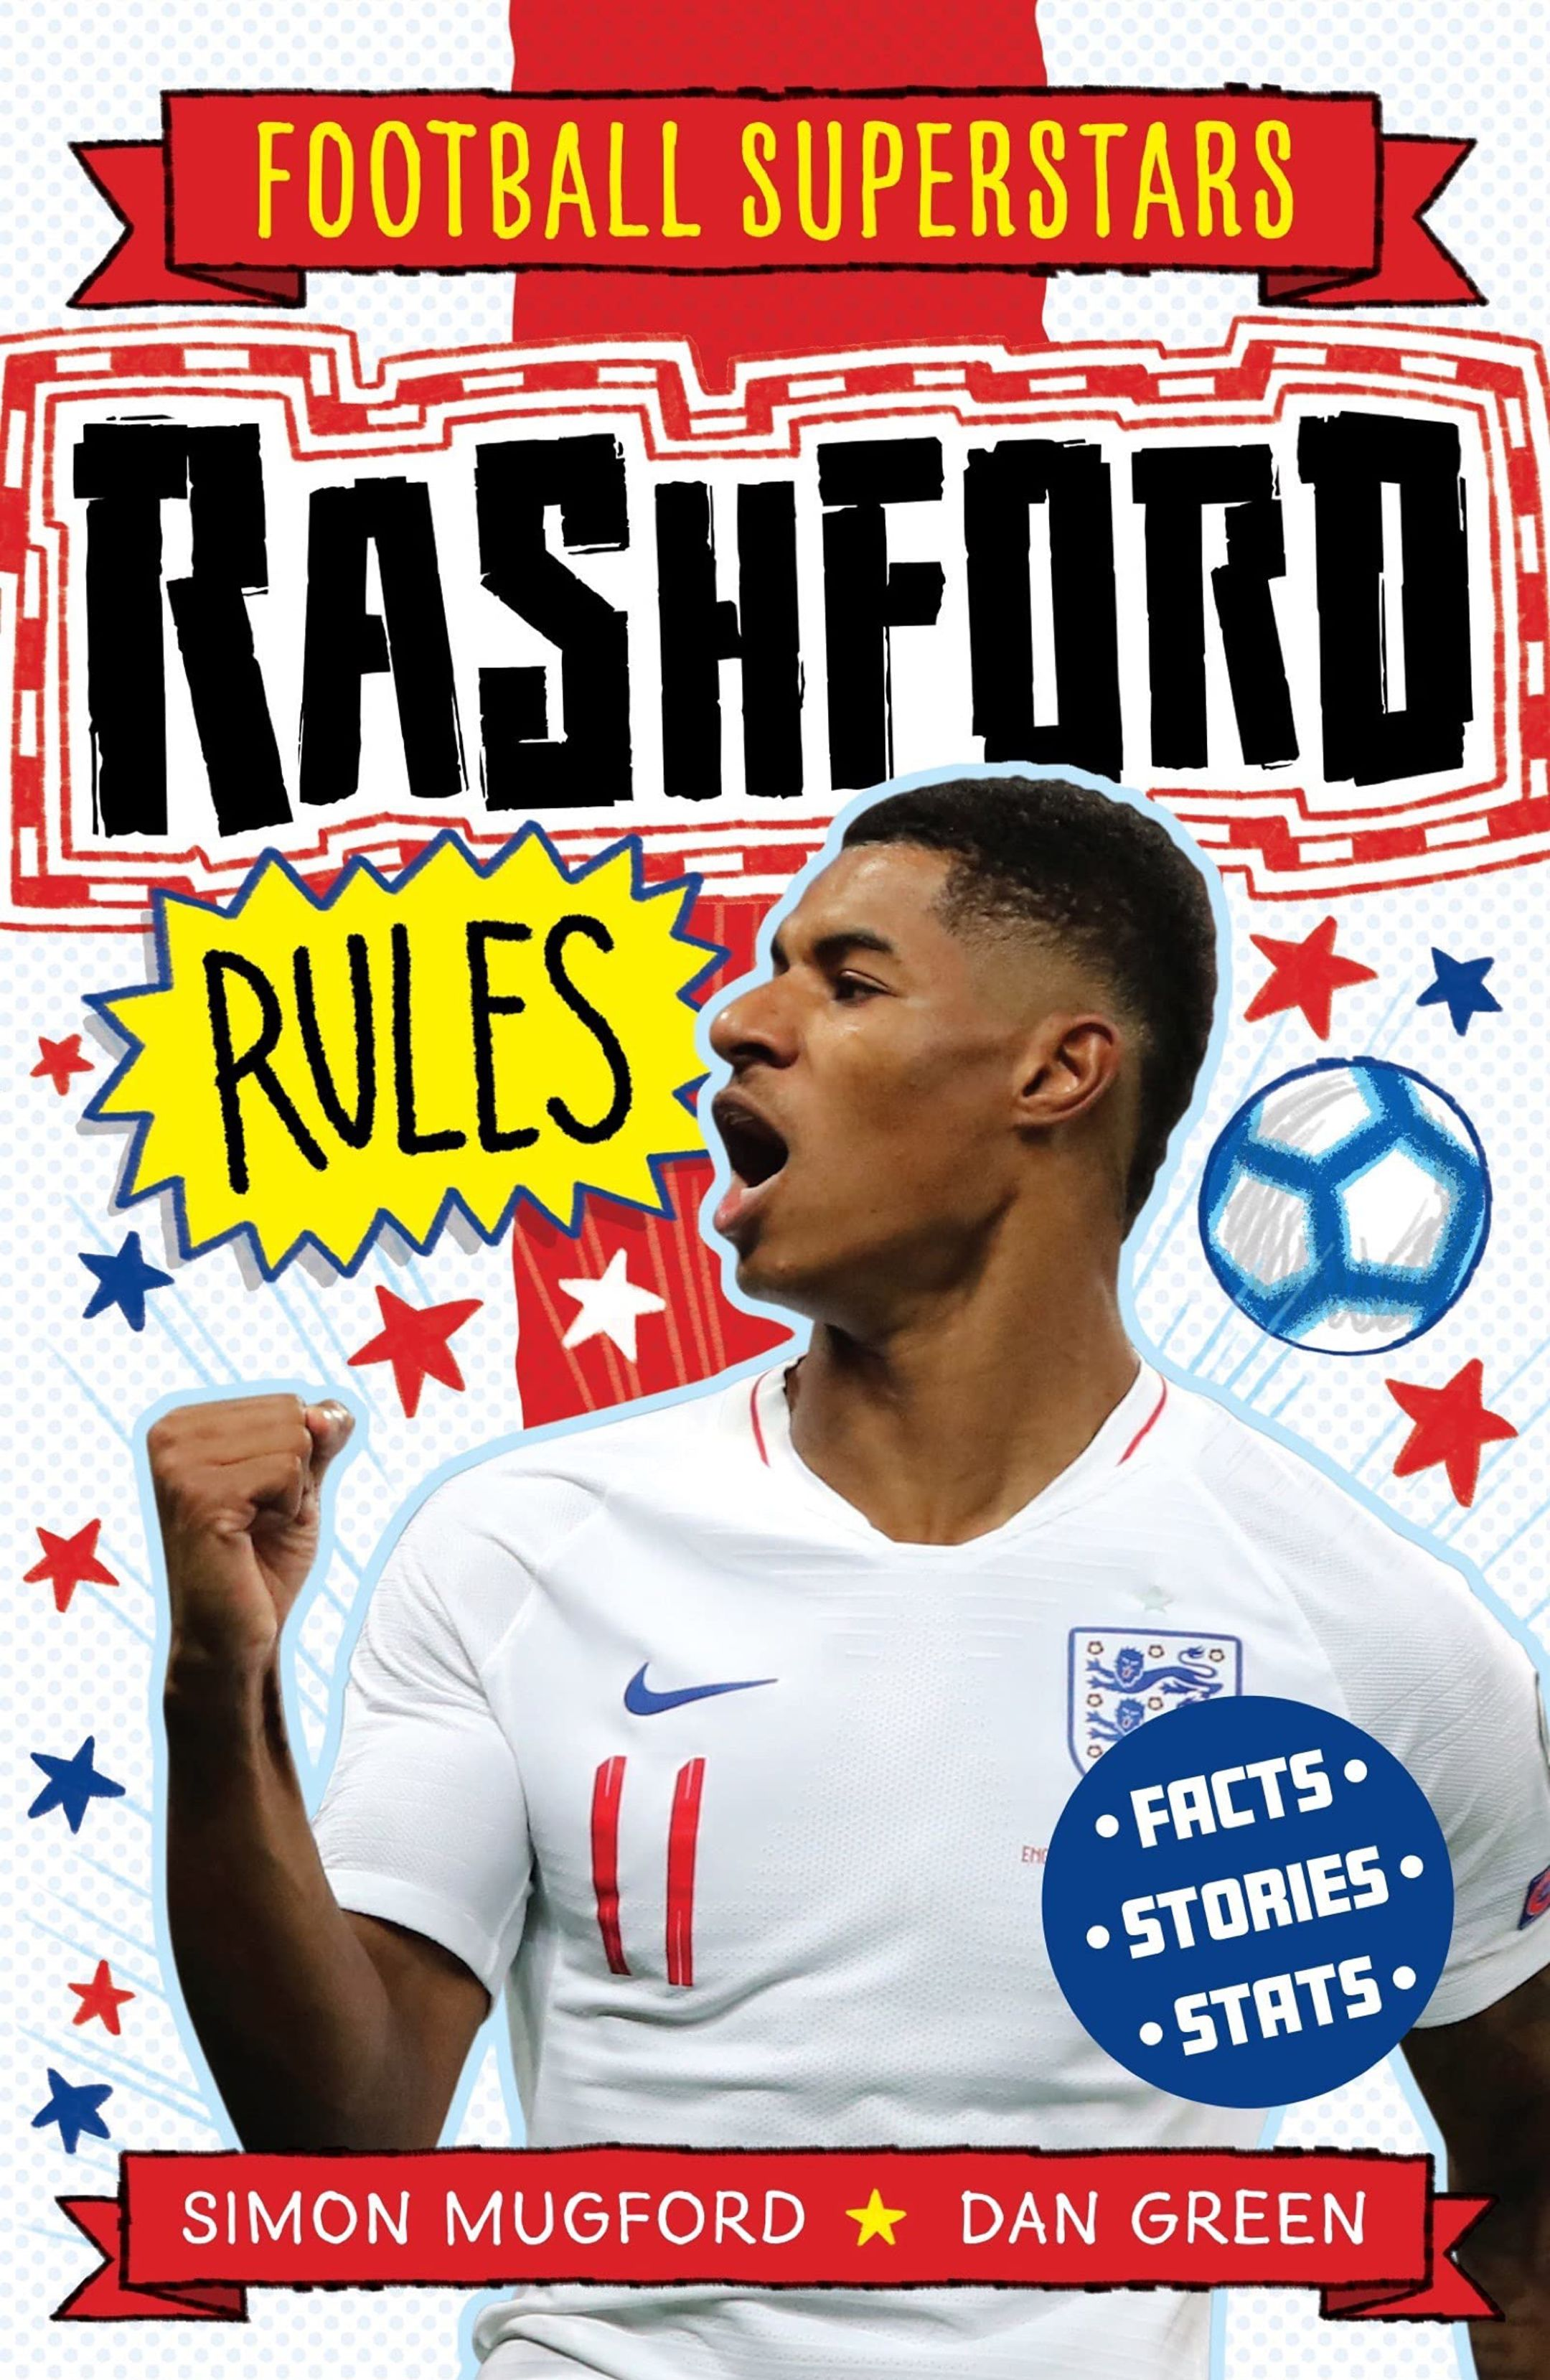 An image of the cover of the book, Rashford Rules by Simon Mugford and Dan Green